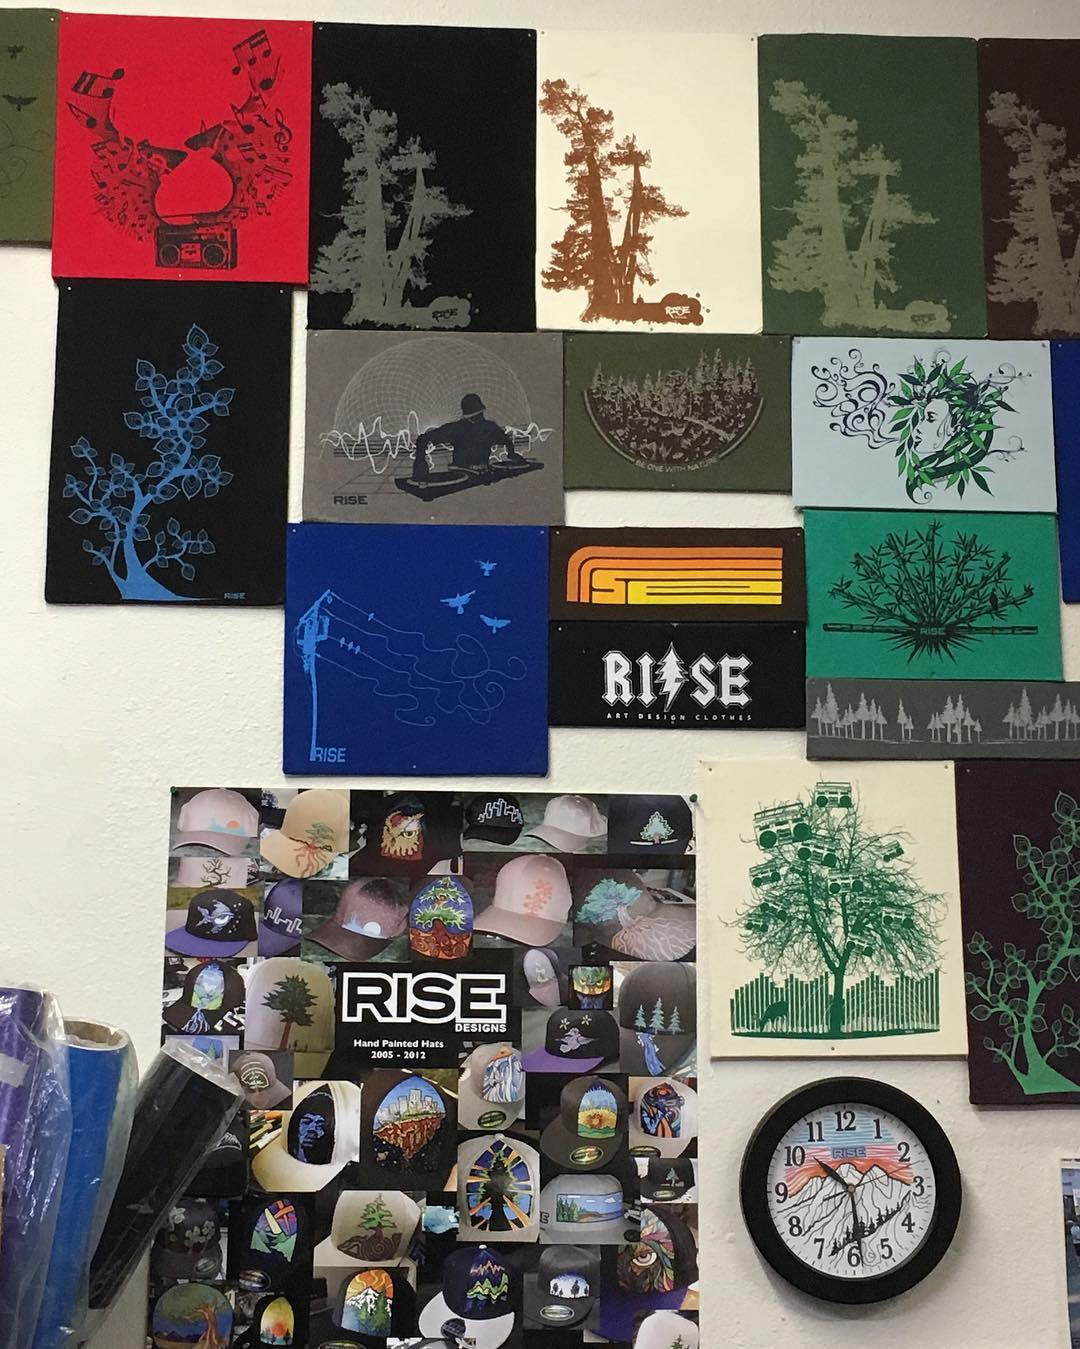 Have you seen our wall of fame? Lots of old designs and hat we drew. Come check it out in our shop sometime. #screenprinting #risedesigns #risedesignstahoe #itstime